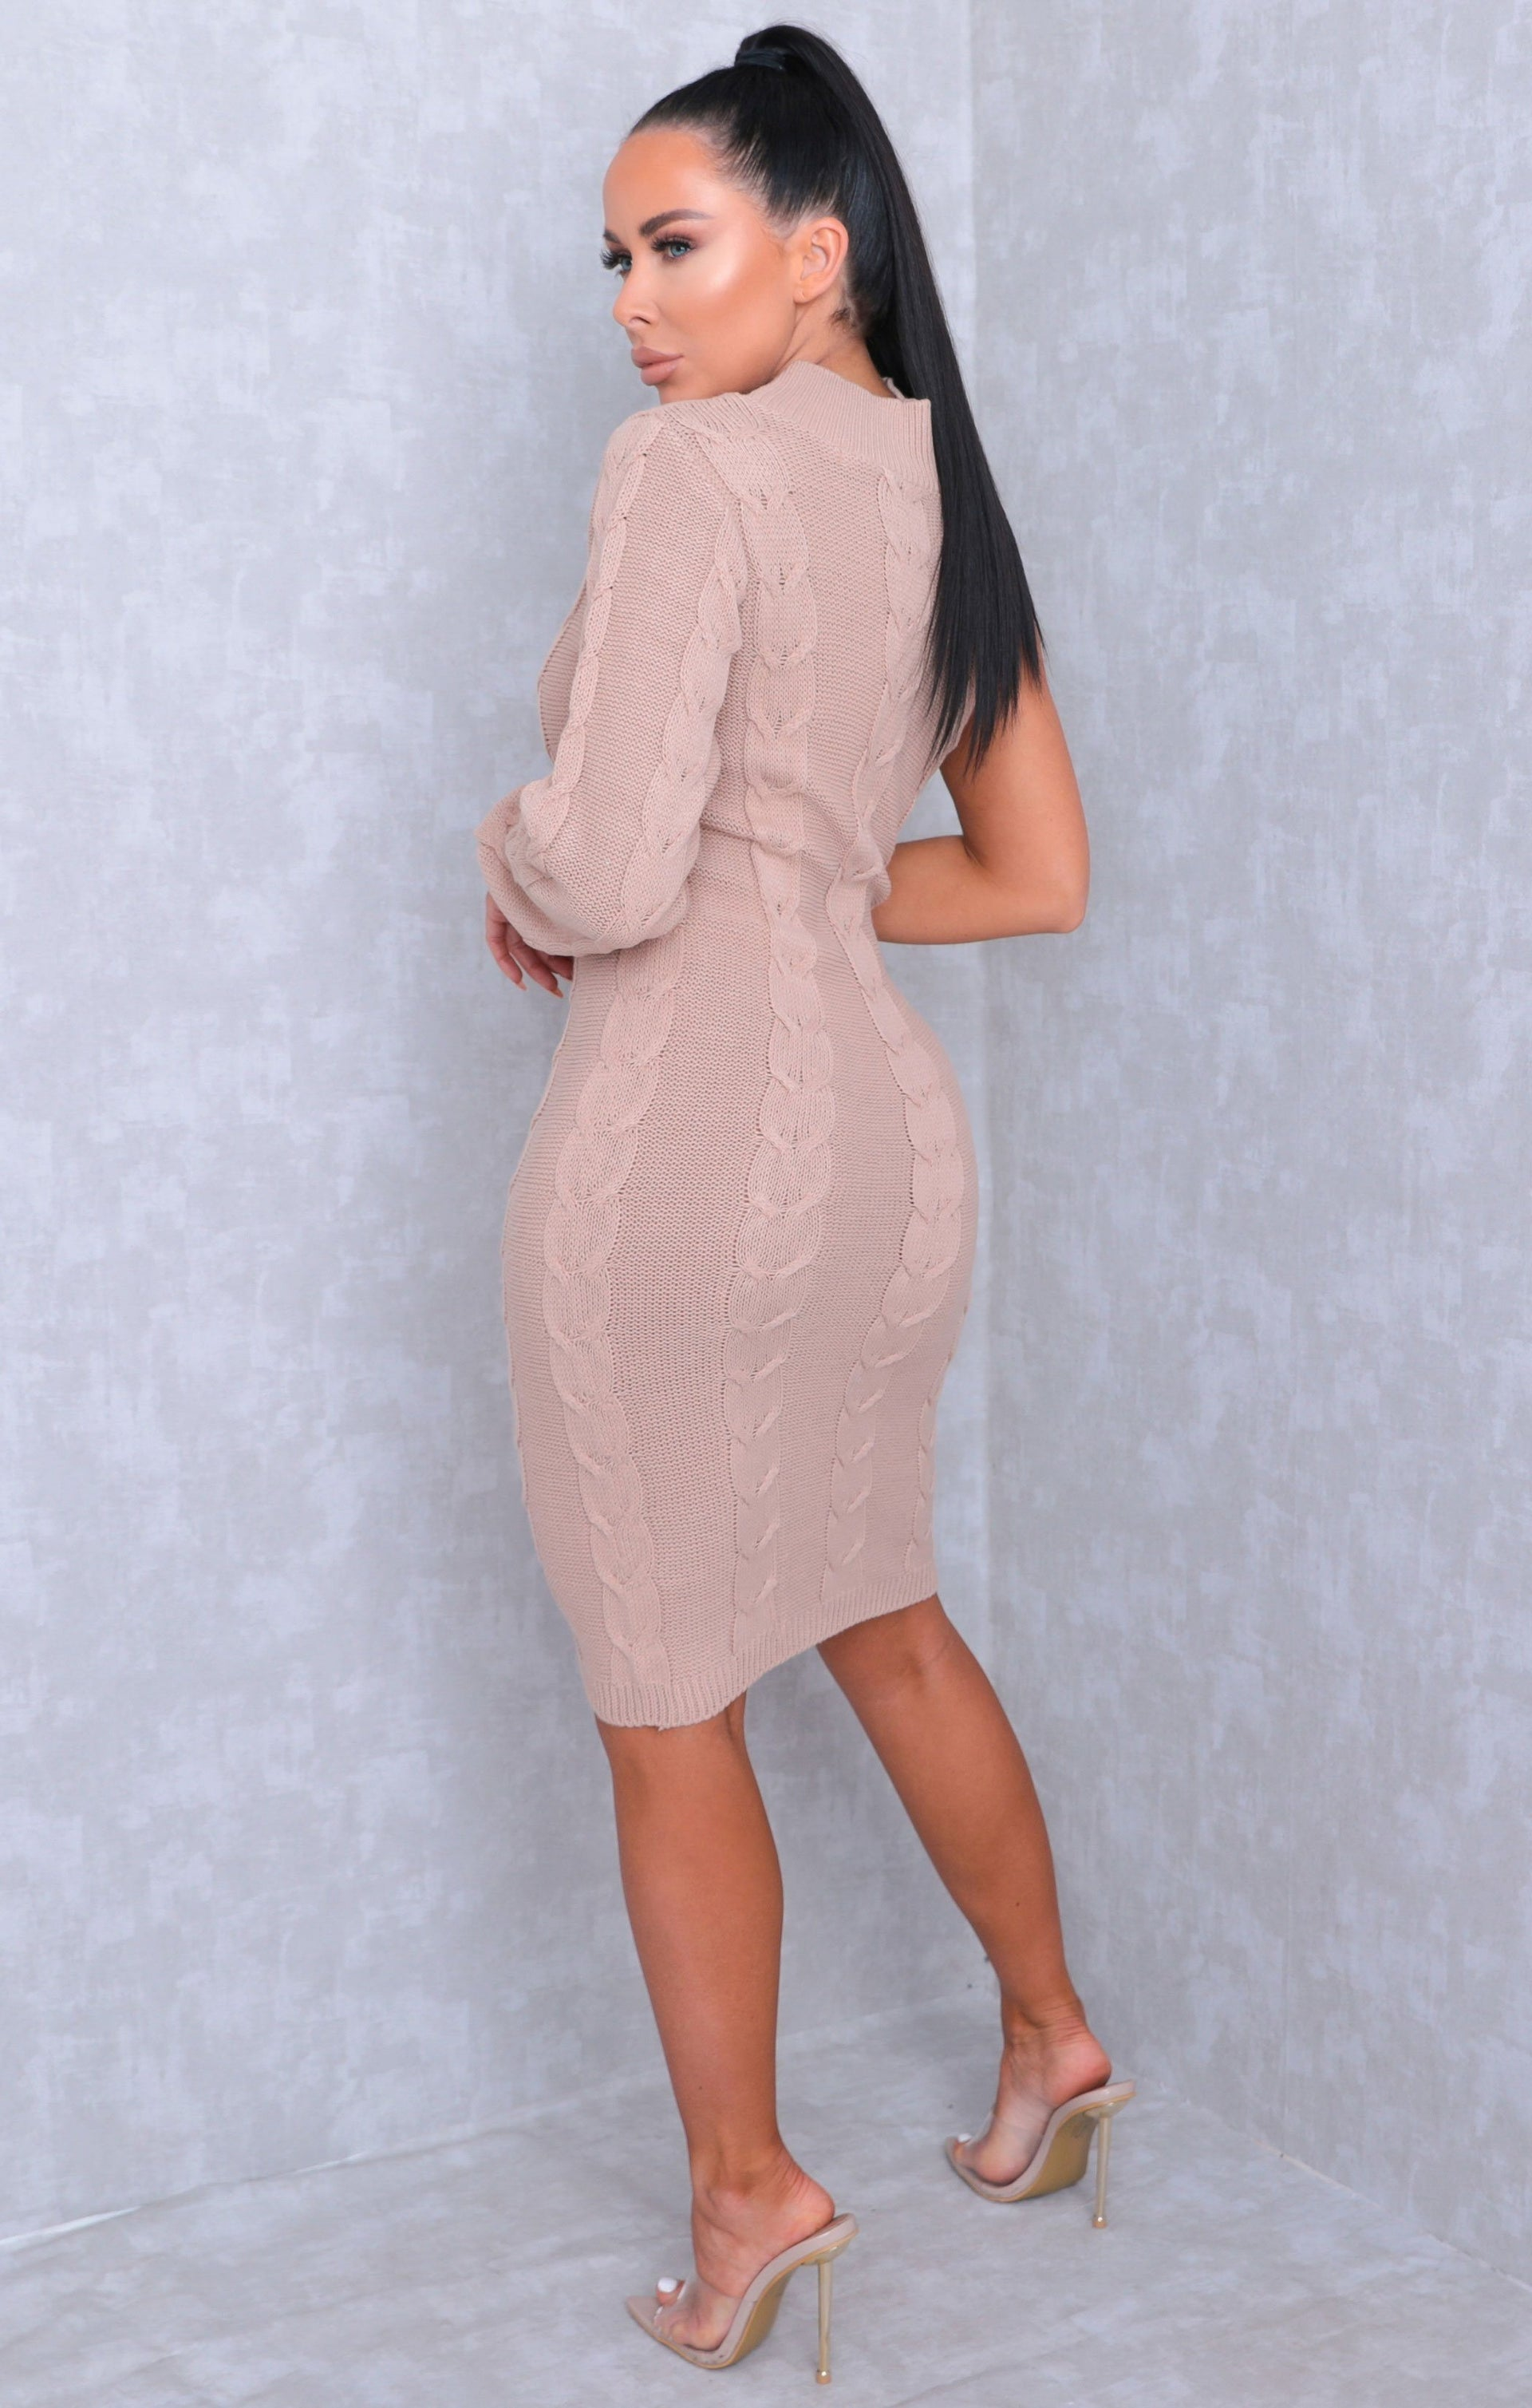 Tan Cable Knit One Shoulder Bodycon Midi Dress - Trudy